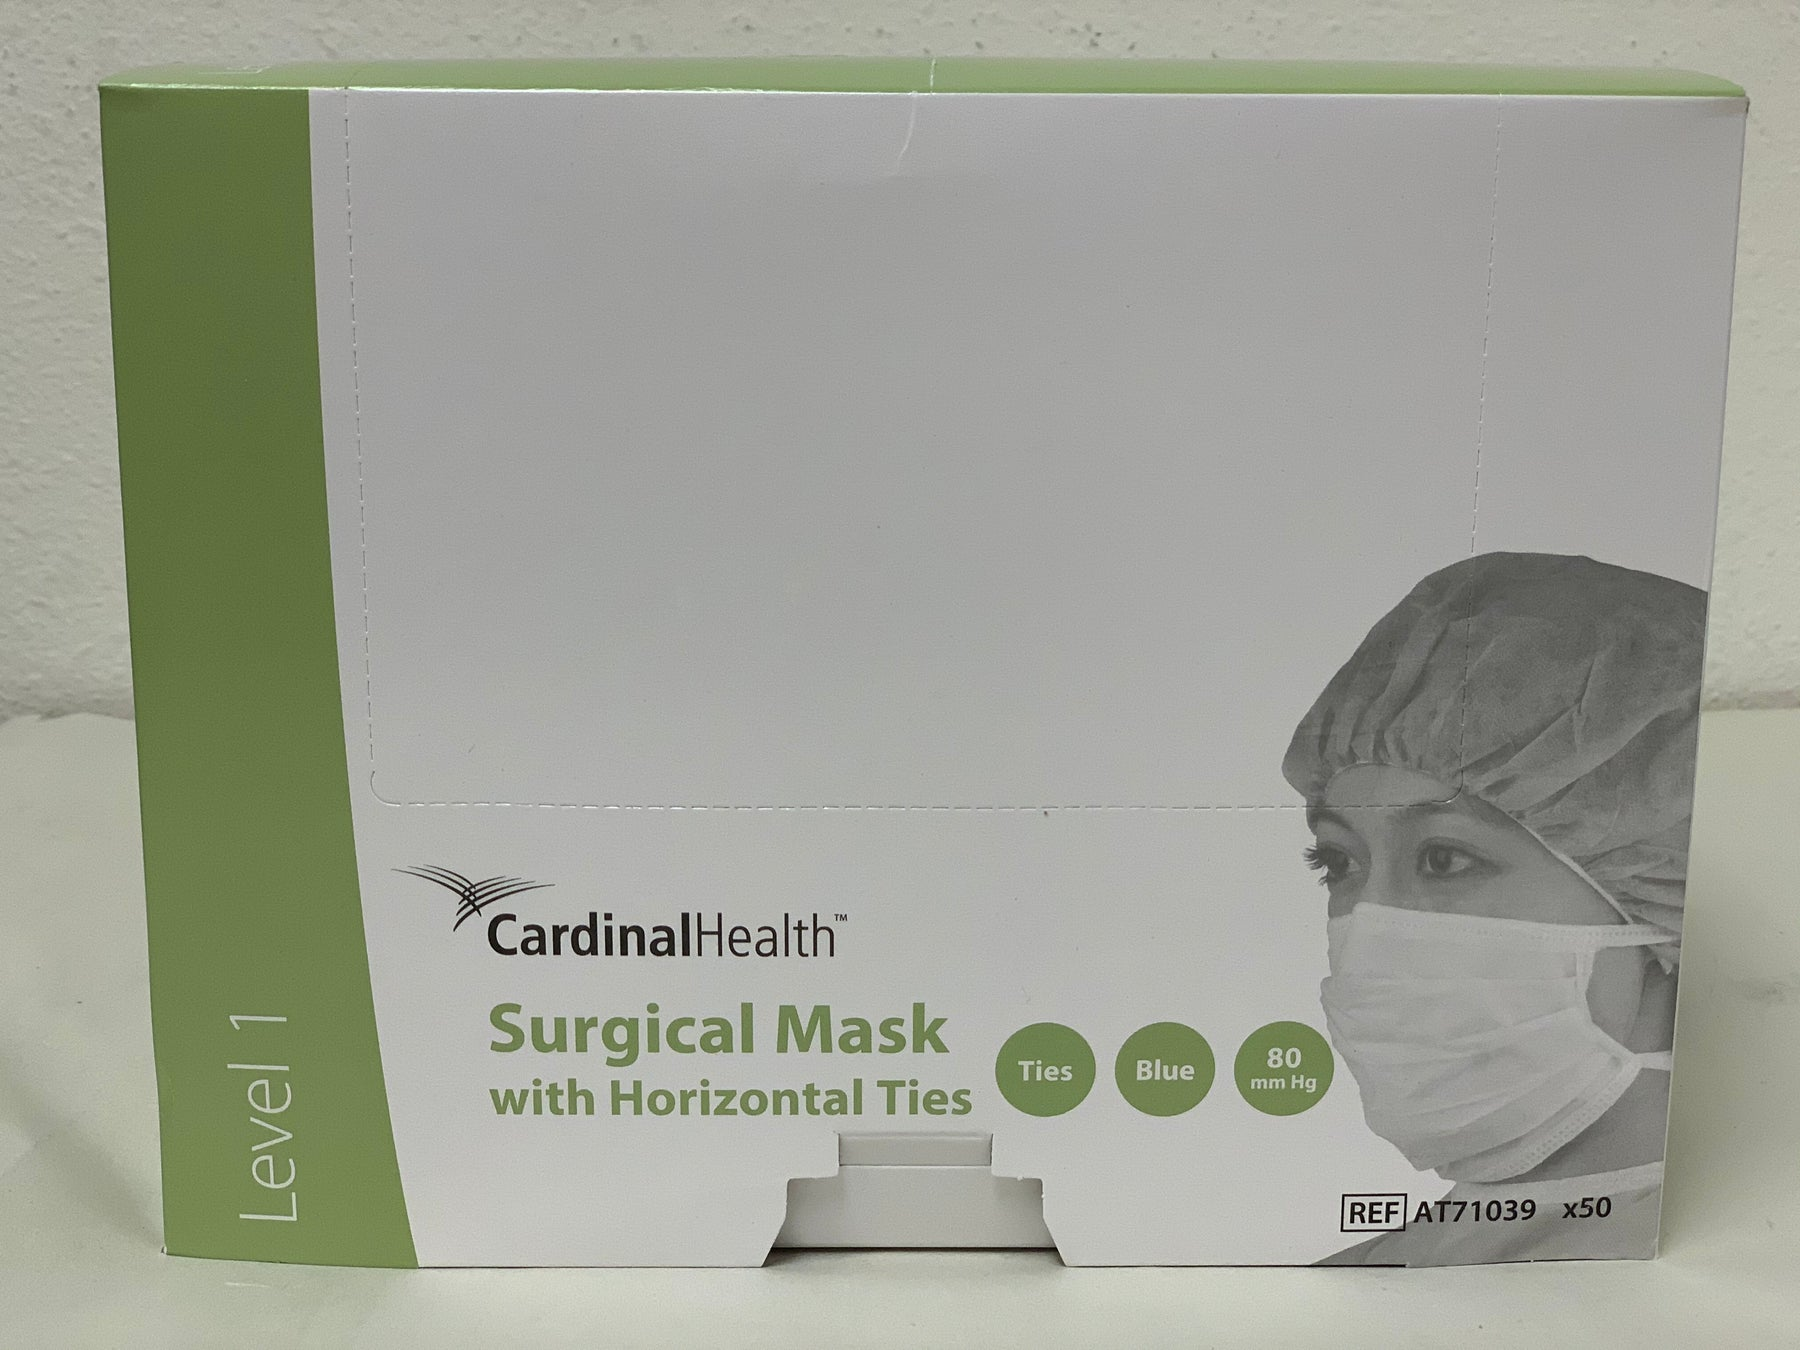 Cardinal Health AT71039 - Surgical Mask with Horizontal Ties Blue - Box of 50 Masks